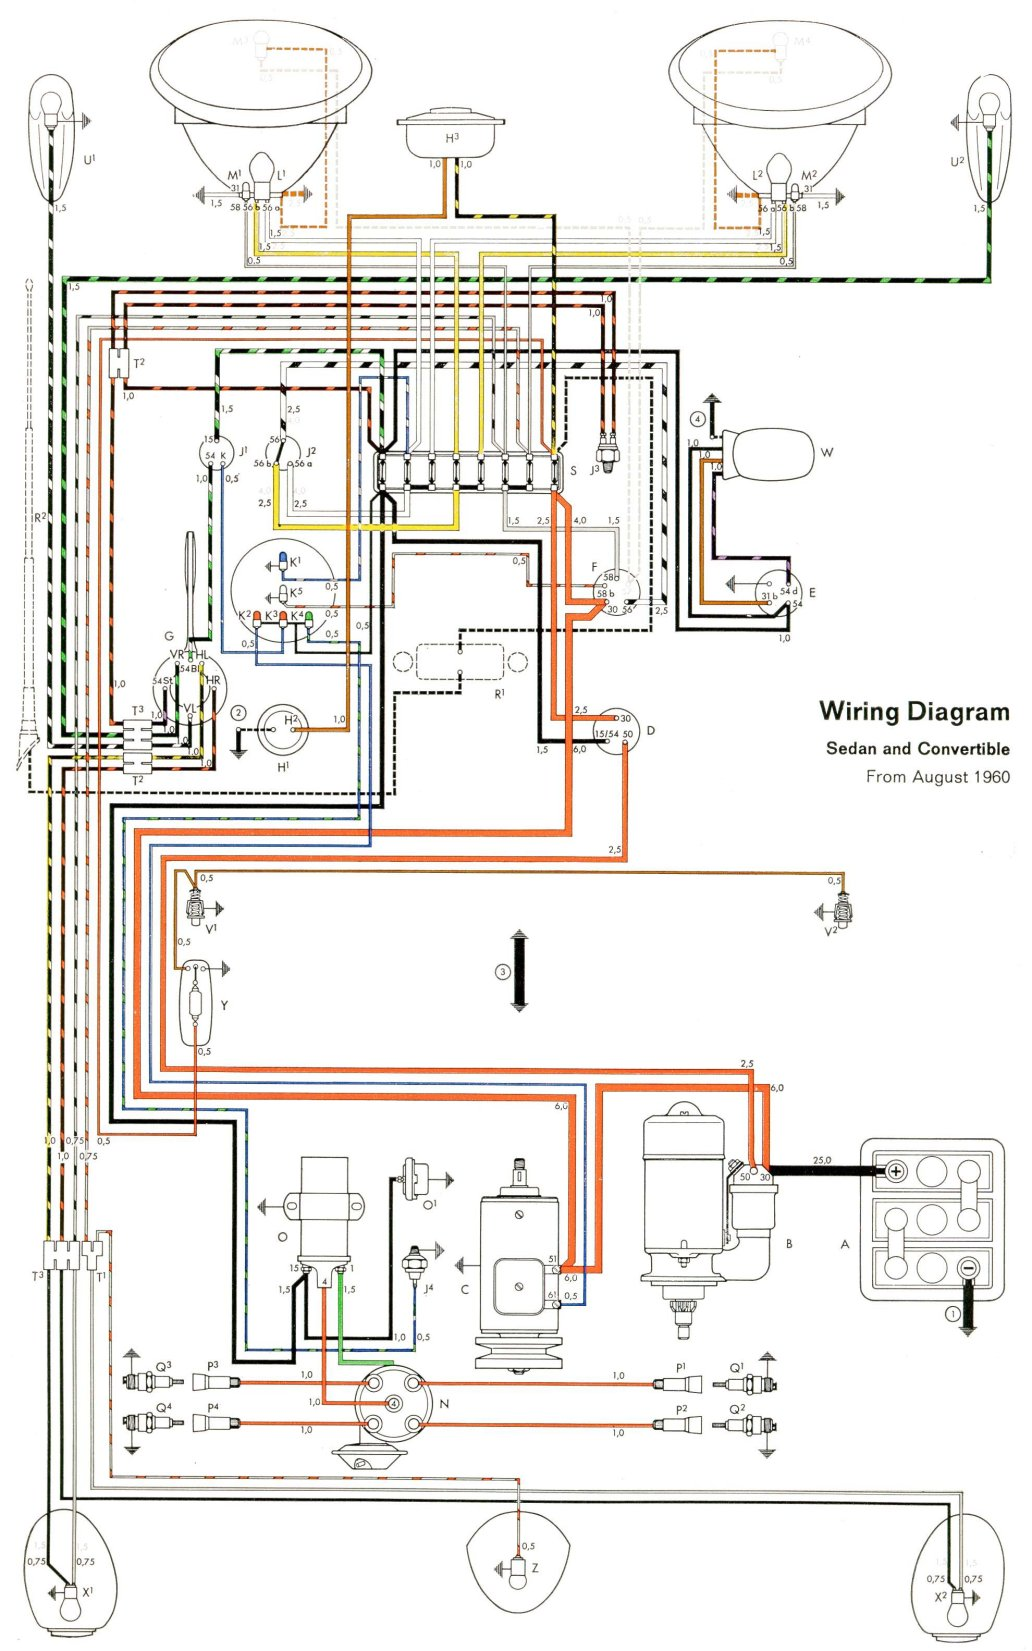 bug_61 info from 73 VW Beetle Wiring Diagram at soozxer.org